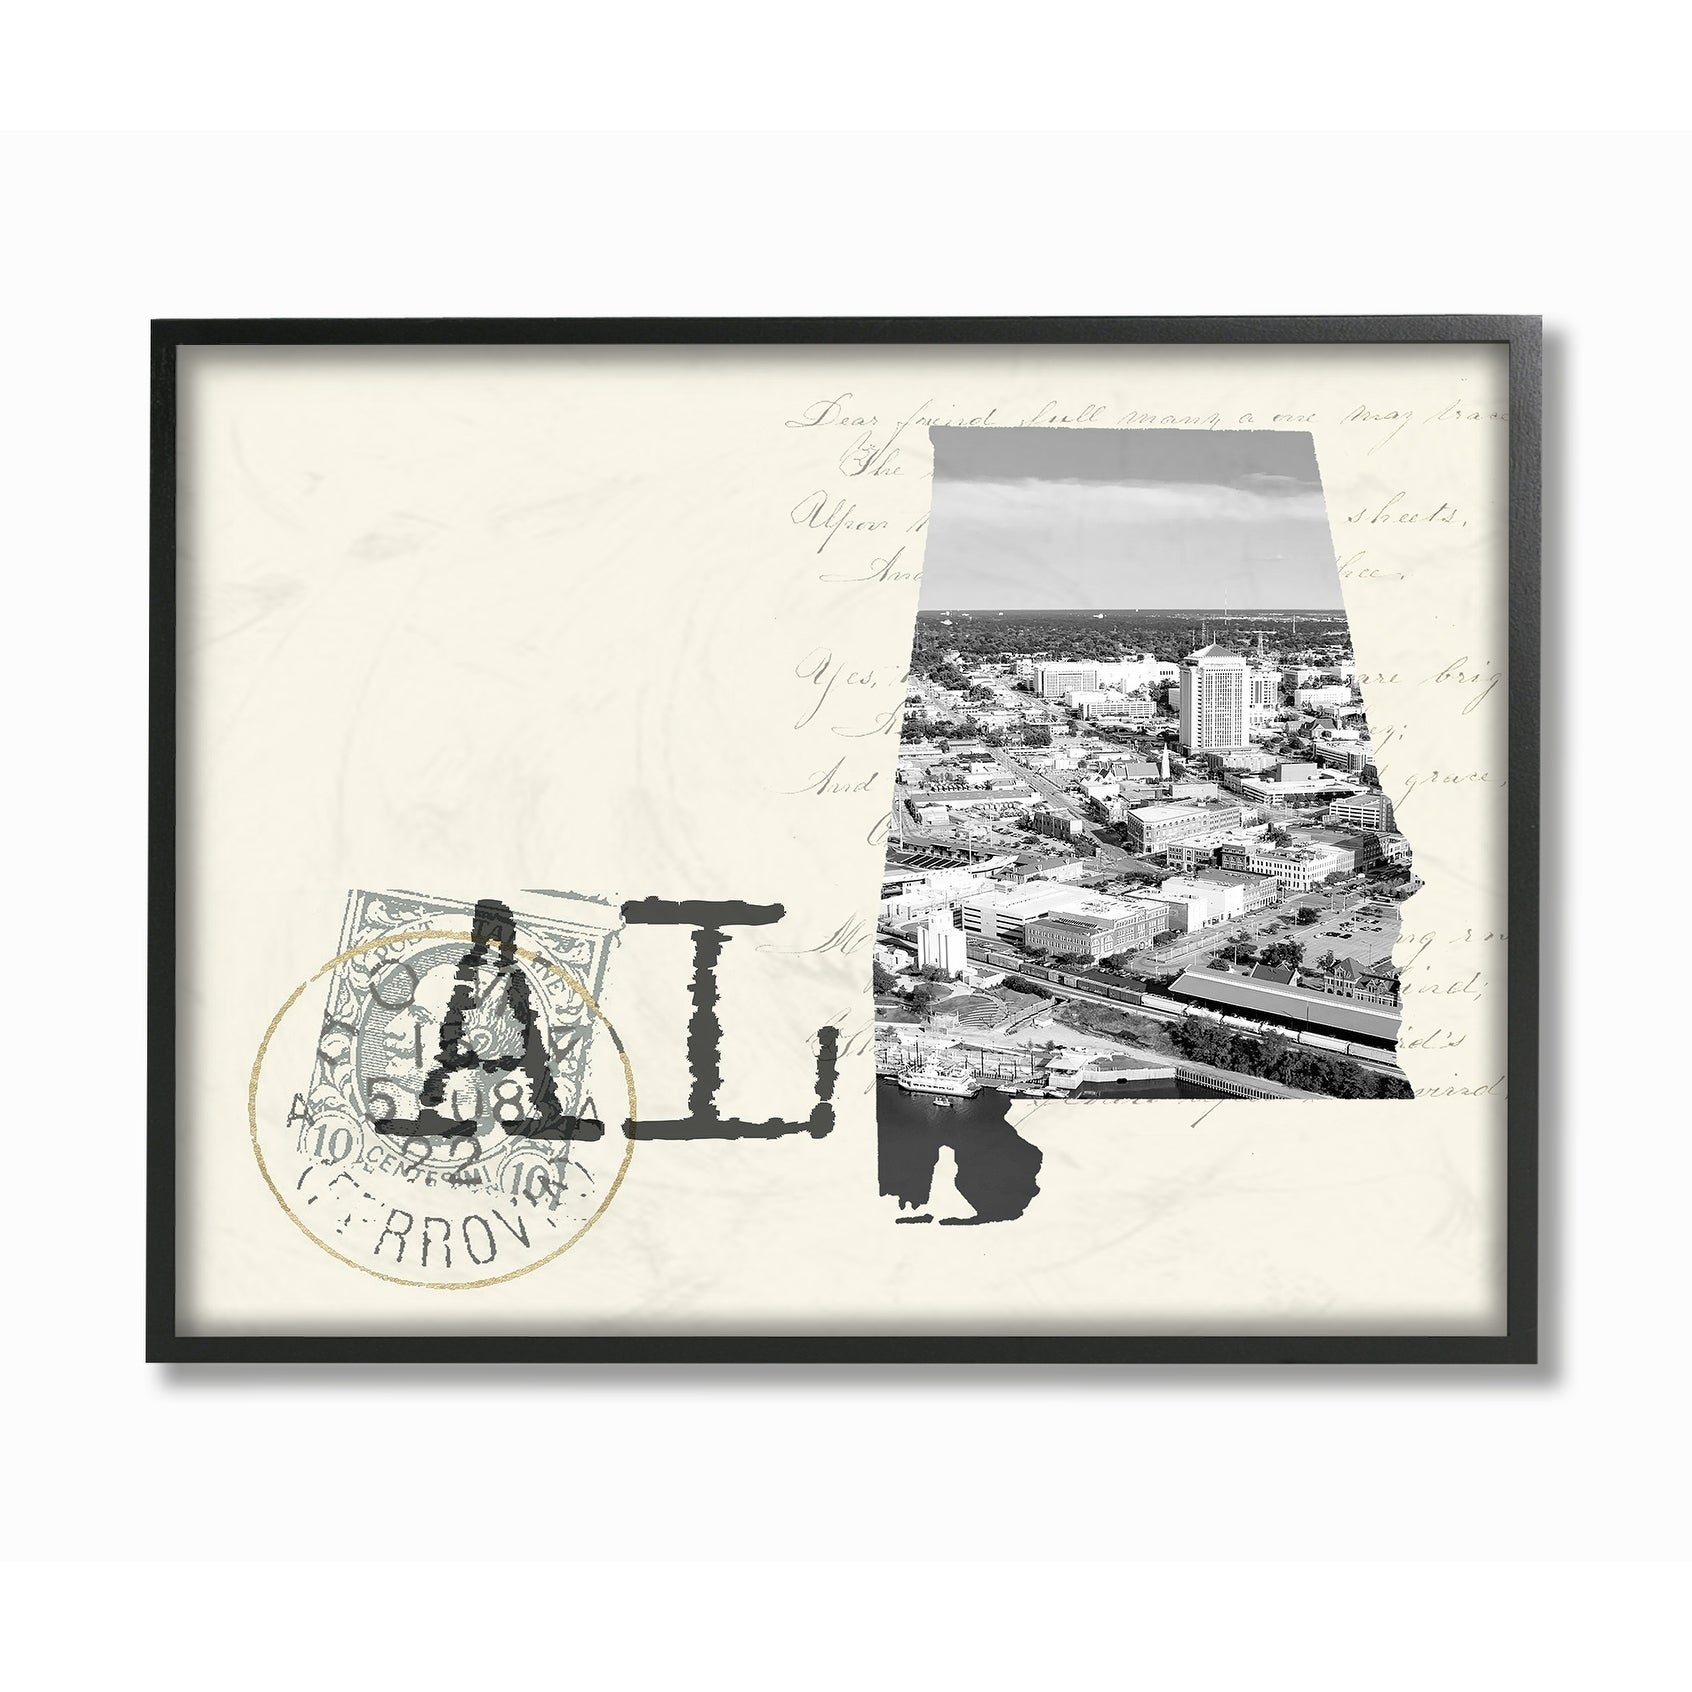 Details about the stupell home decor alabama black and white photograph framed art 11 x 14